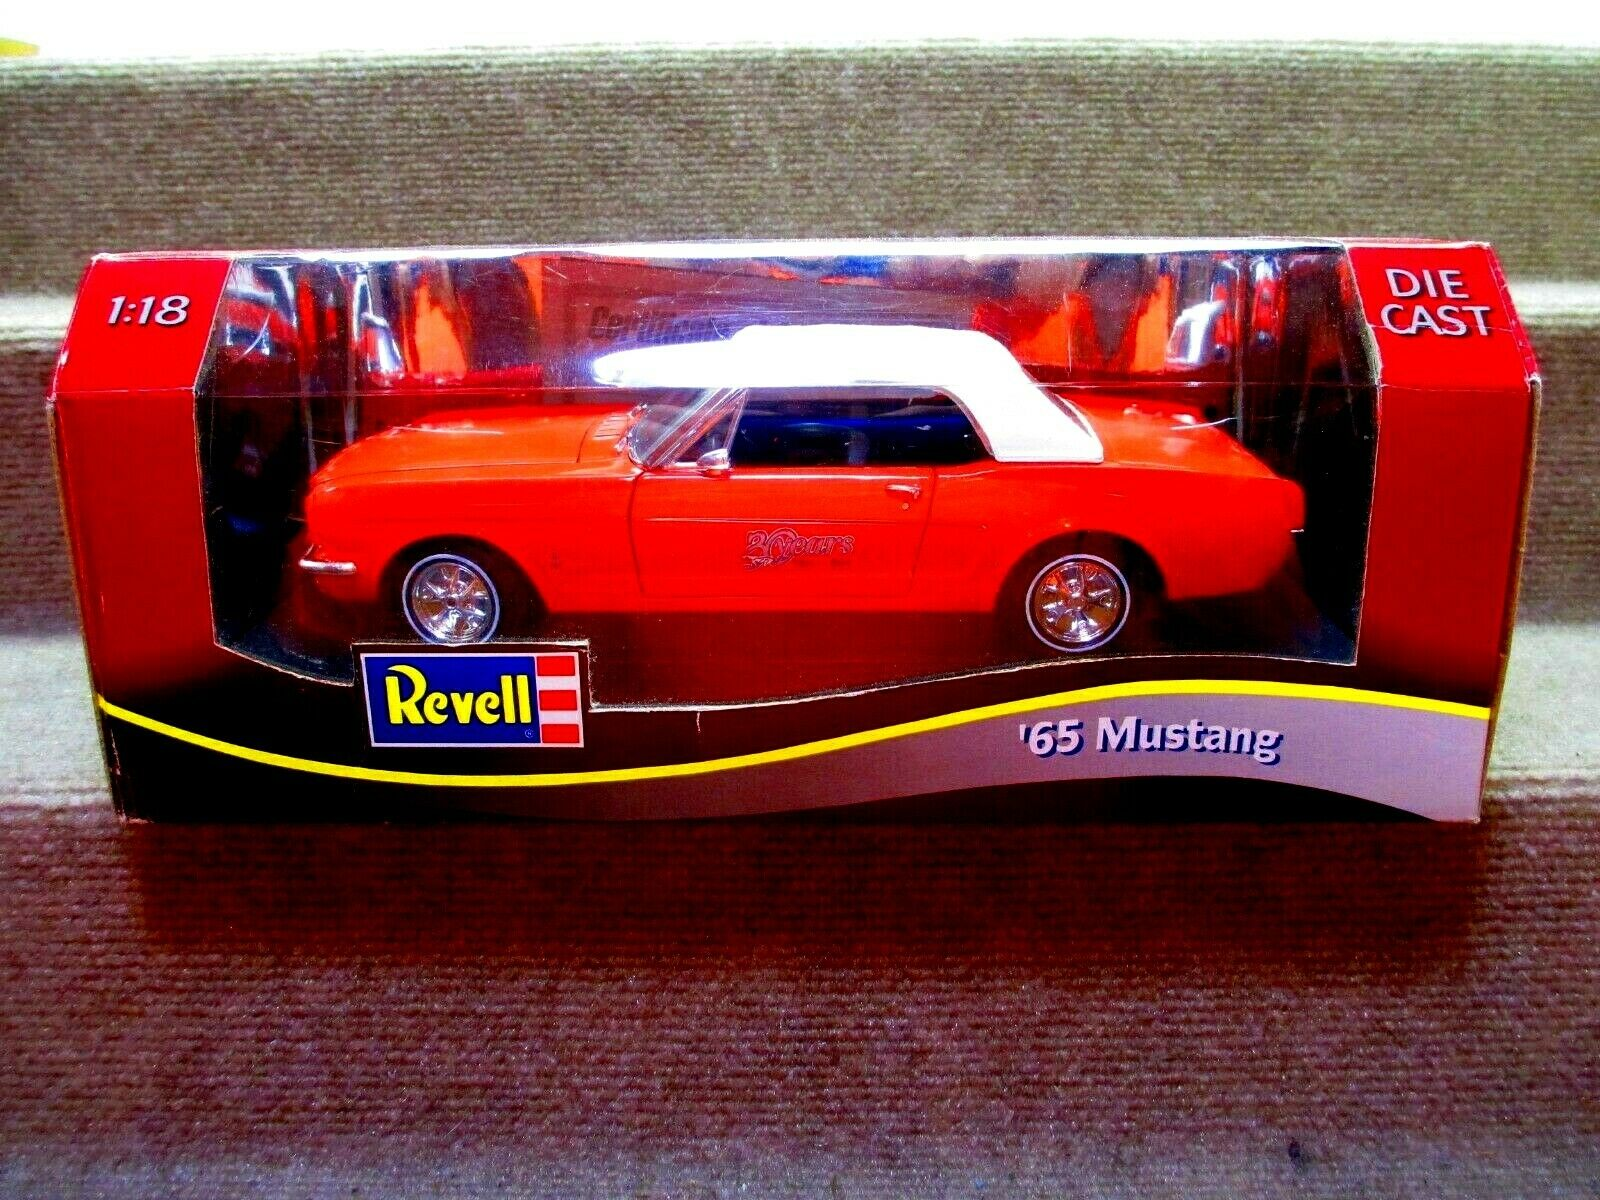 Revell 1965 Mustang CONgreenIBLE  (red) 30 YEAR ANNIVERSARY MODEL DIECAST METAL